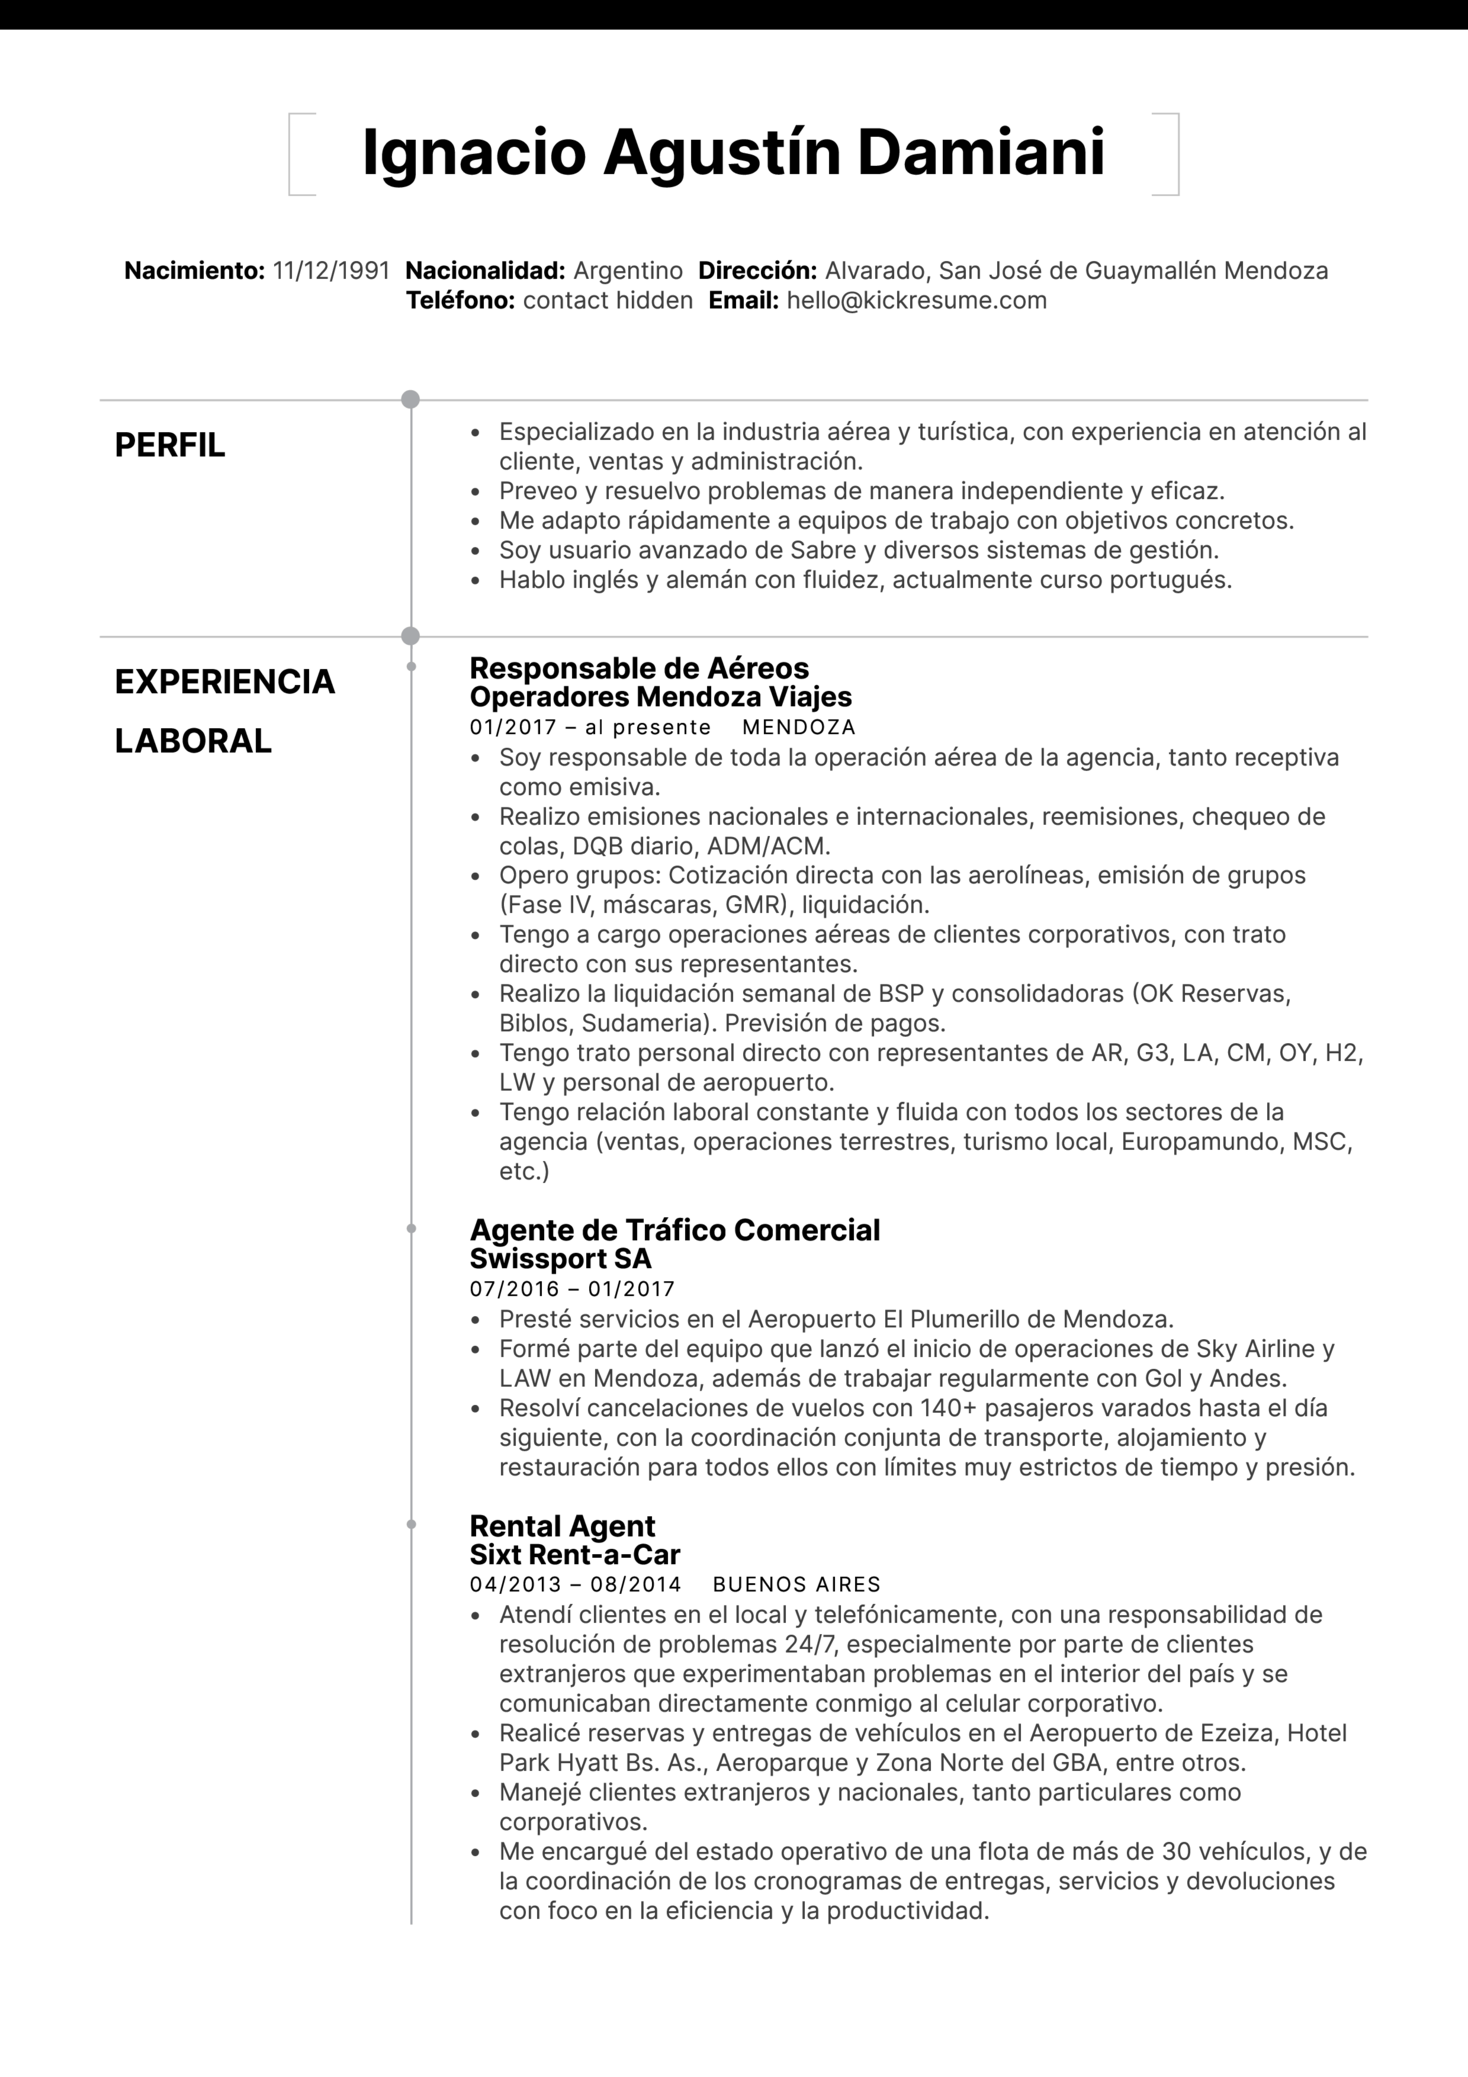 Resume Examples by Real People: Muestra de reanudación de agente de ...